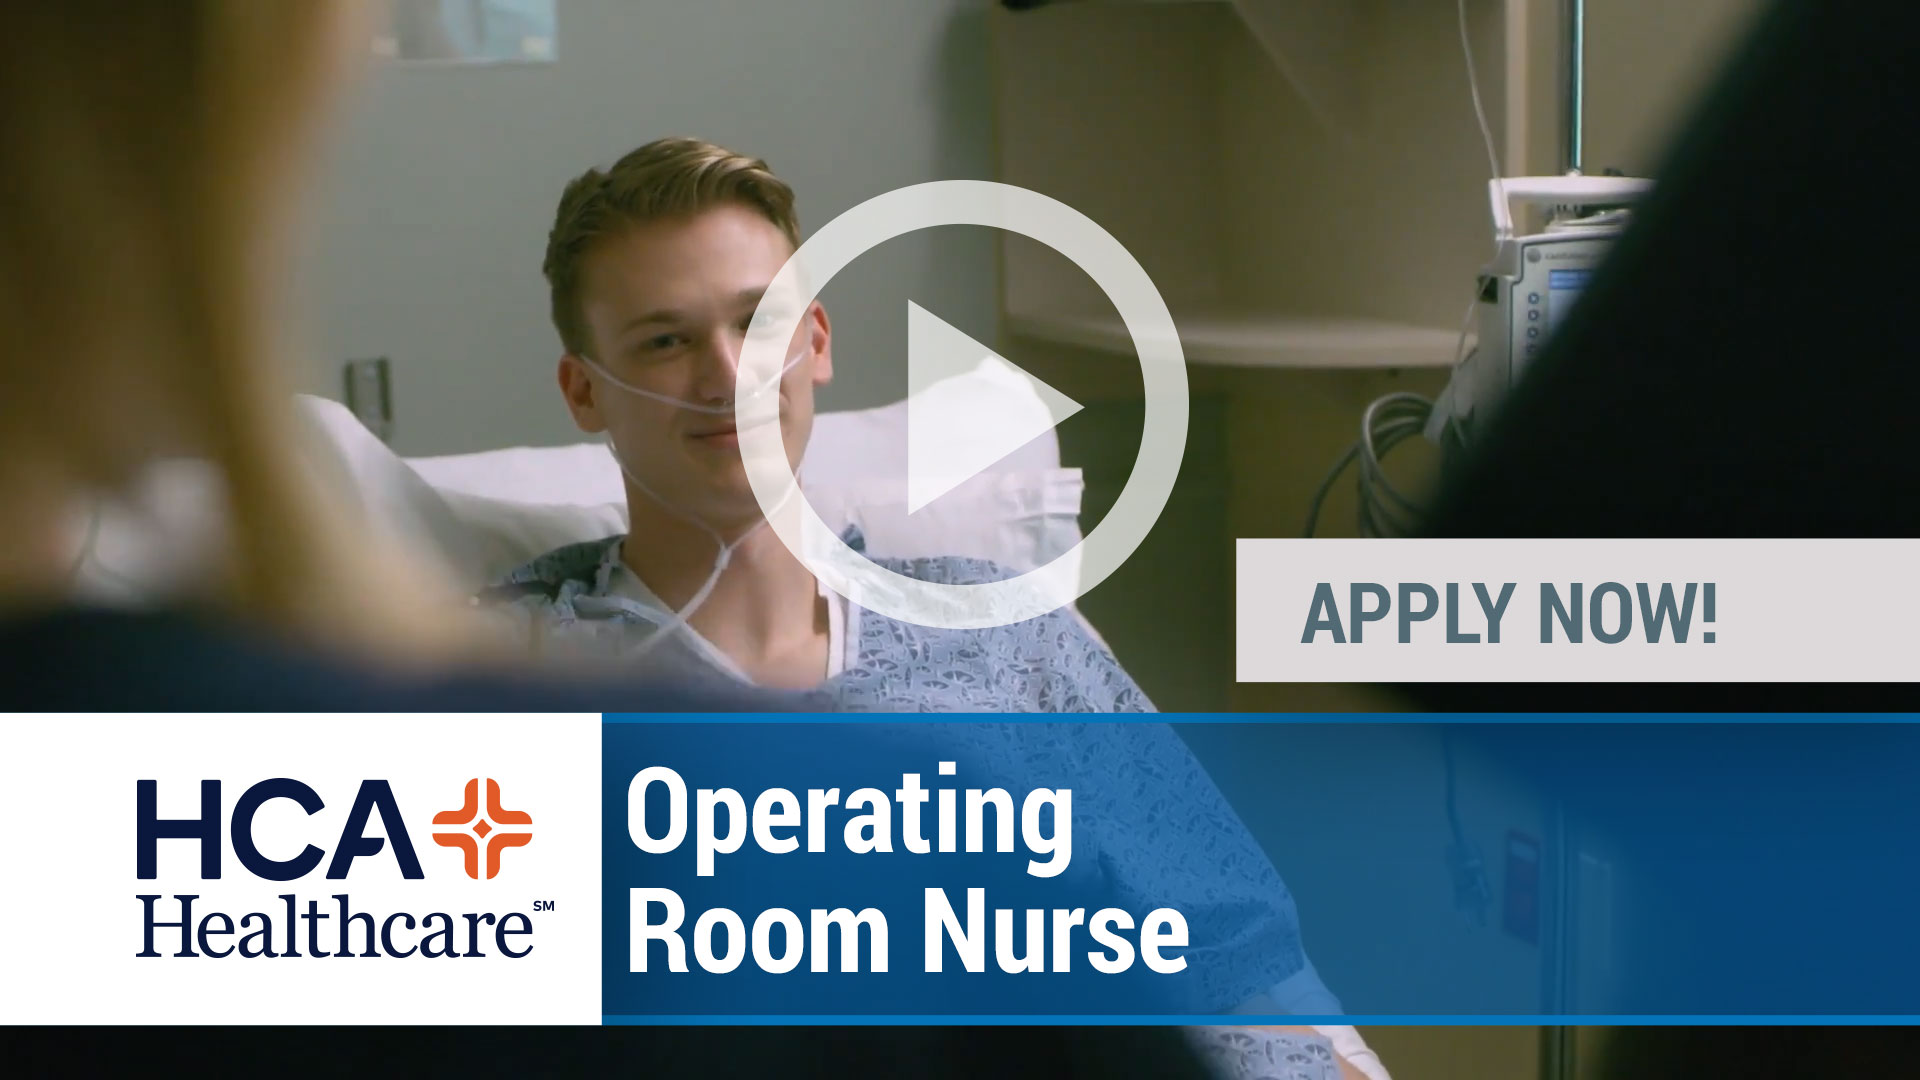 Watch our careers video for available job opening Operating Room Nurse in Atlantis, Florida